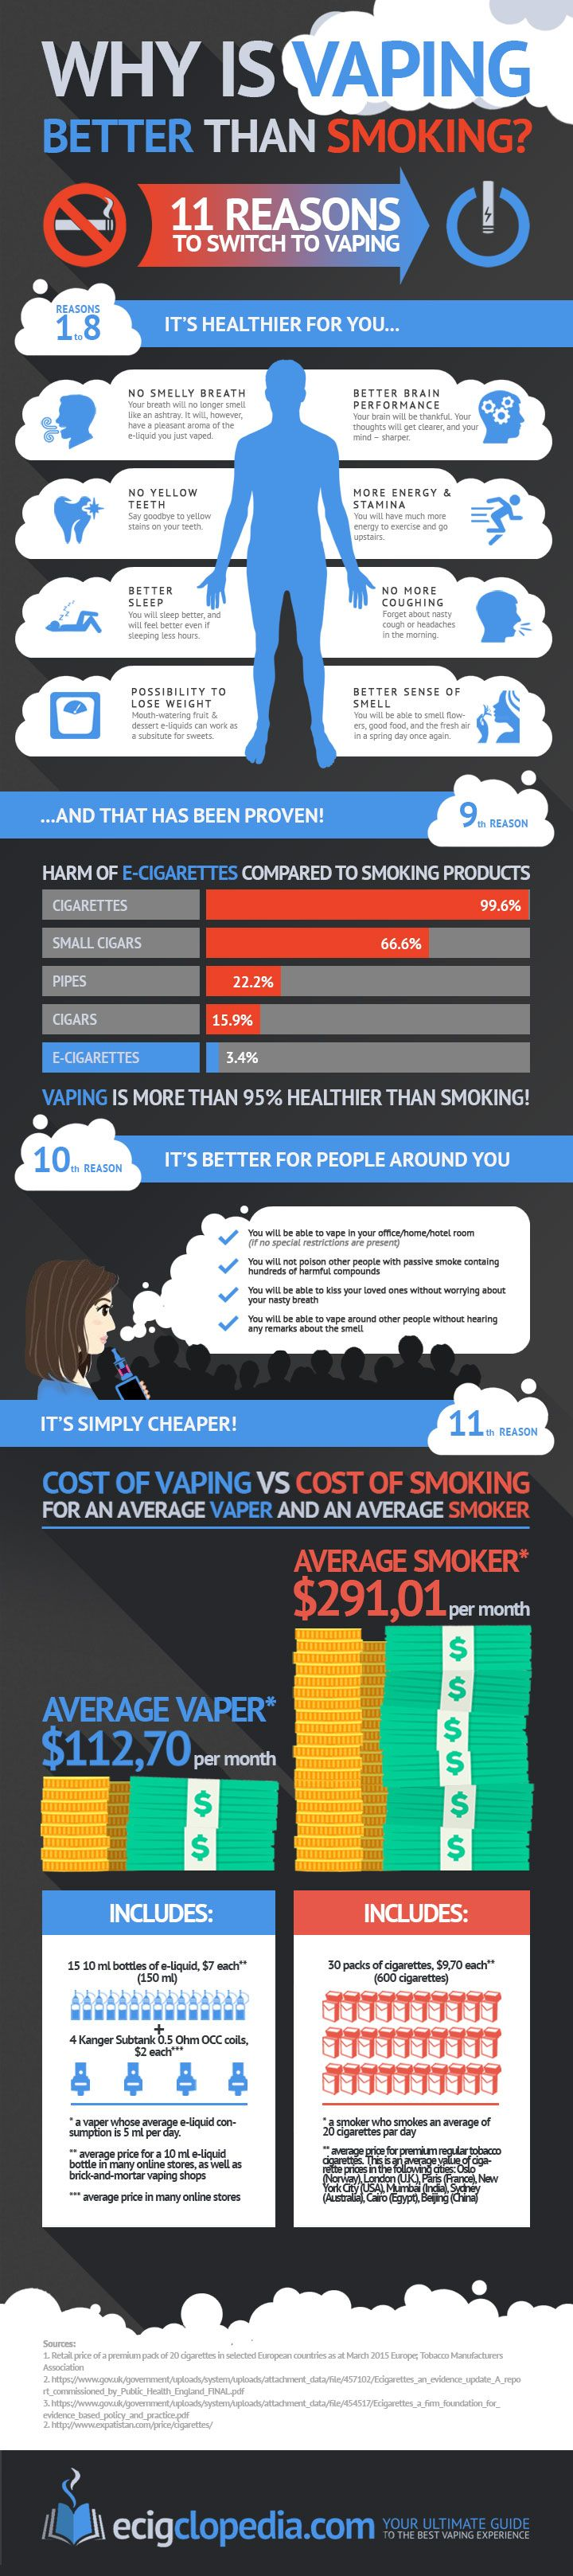 Why Is Vaping Better Than Smoking Cigarettes?